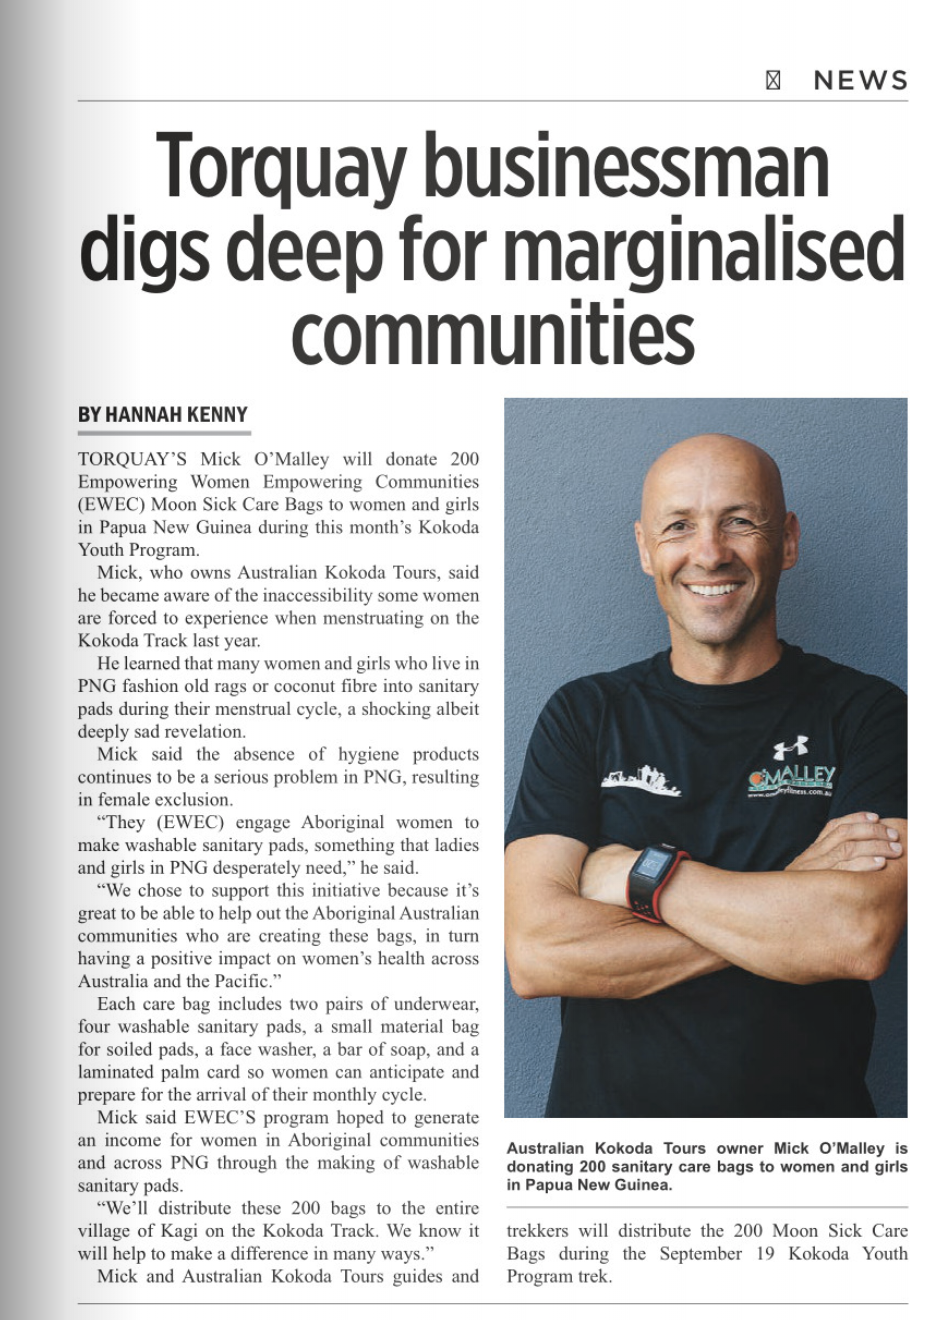 Mick O'Malley article in the Surf Coast Times, September 5th, 2019.